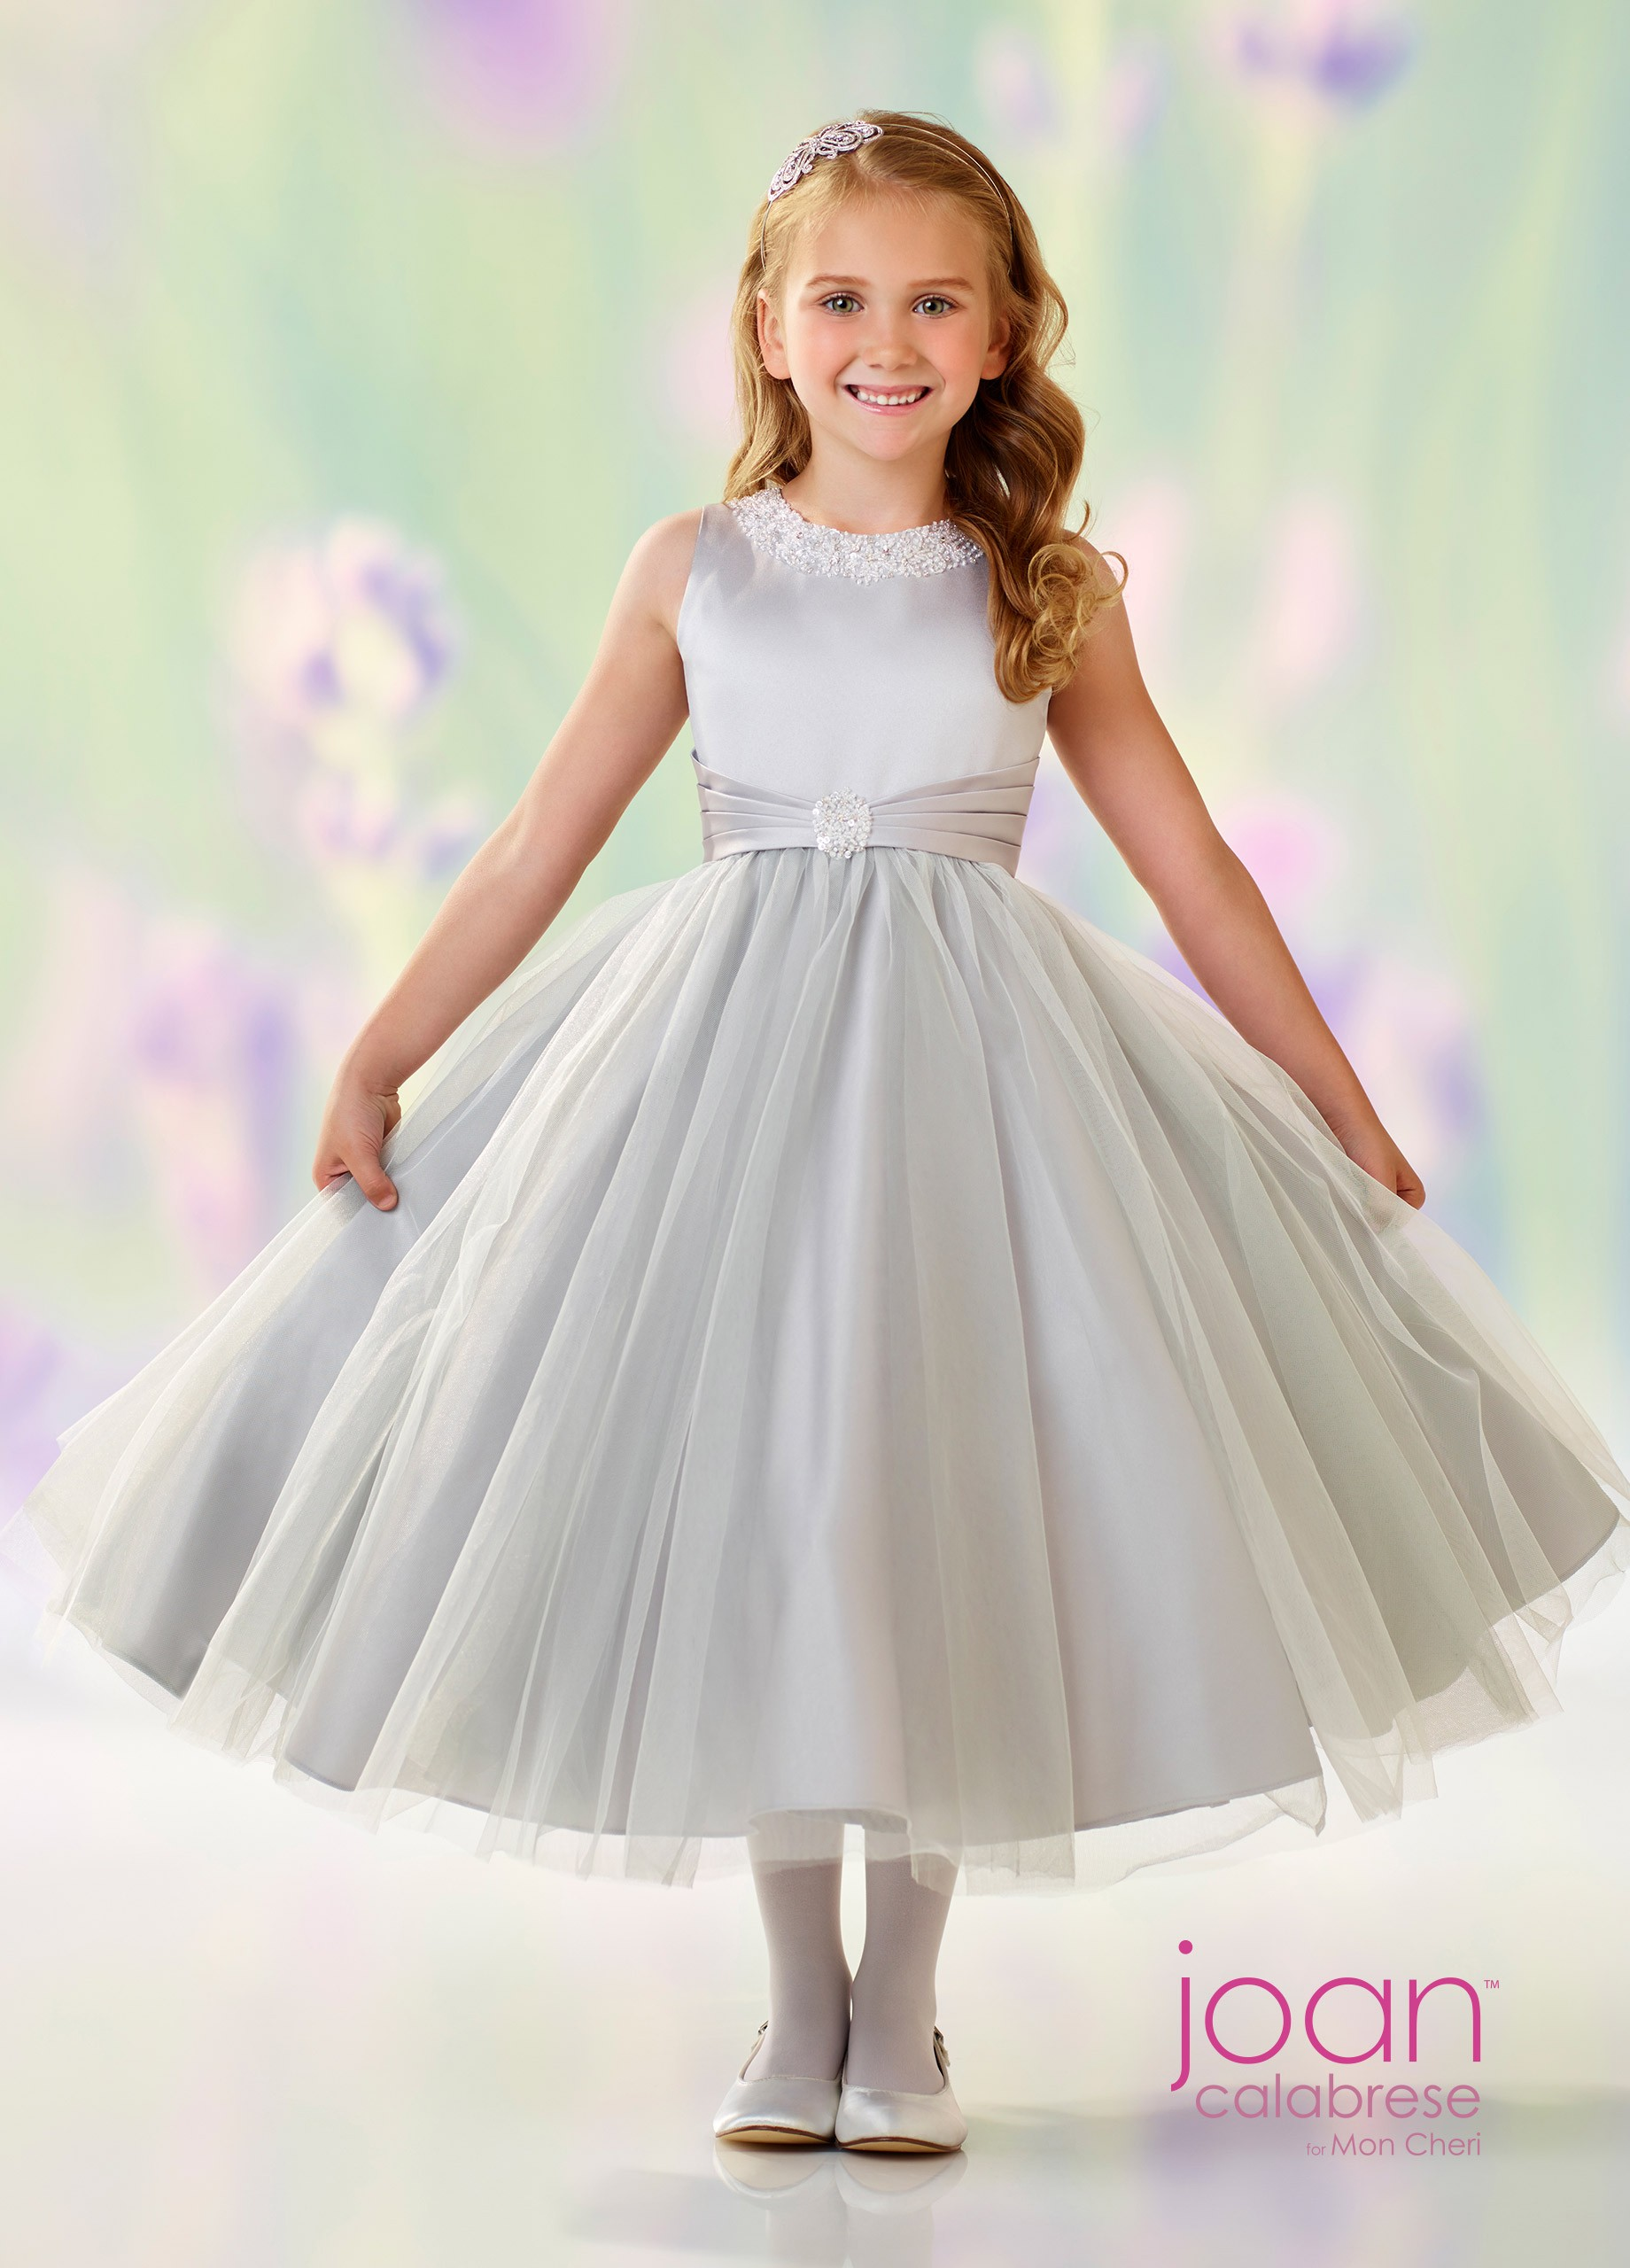 675dacd0dd8 Tap to expand · Joan Calabrese 118312 Jewel Neckline First Communion Dress  Joan Calabrese 118312 Jewel Neckline First Communion Dress